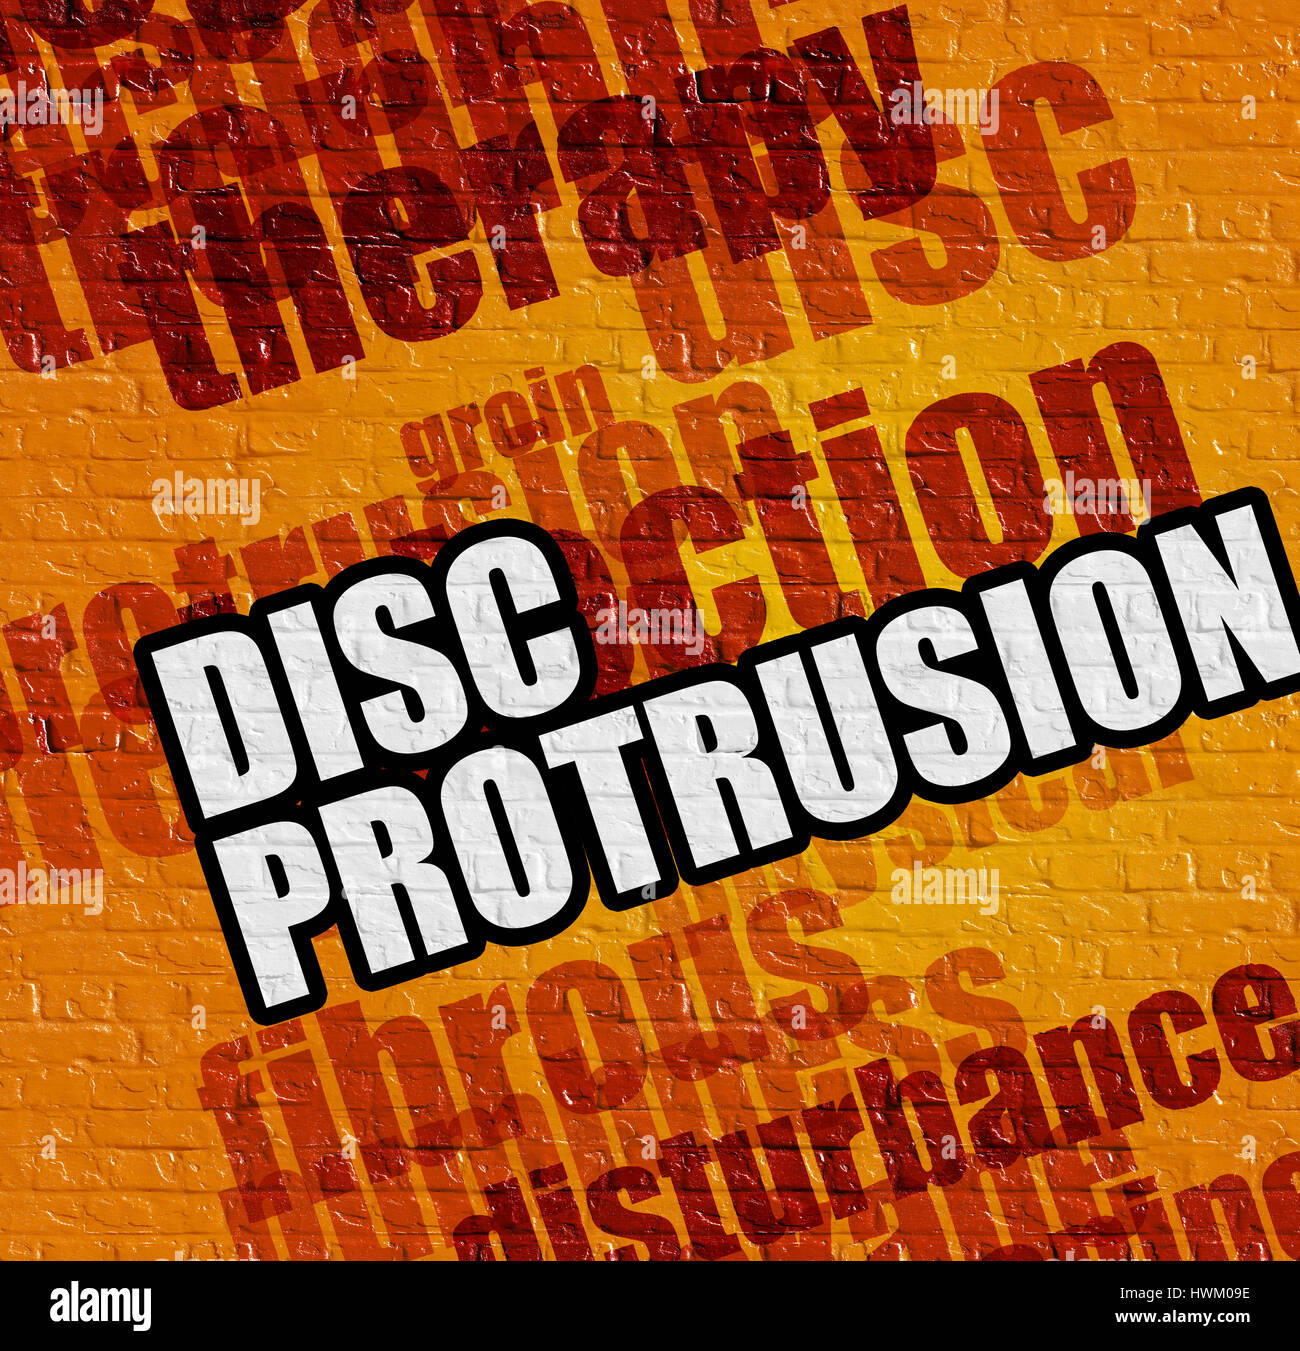 Modern healthcare concept: Disc Protrusion on the Yellow Brickwa - Stock Image